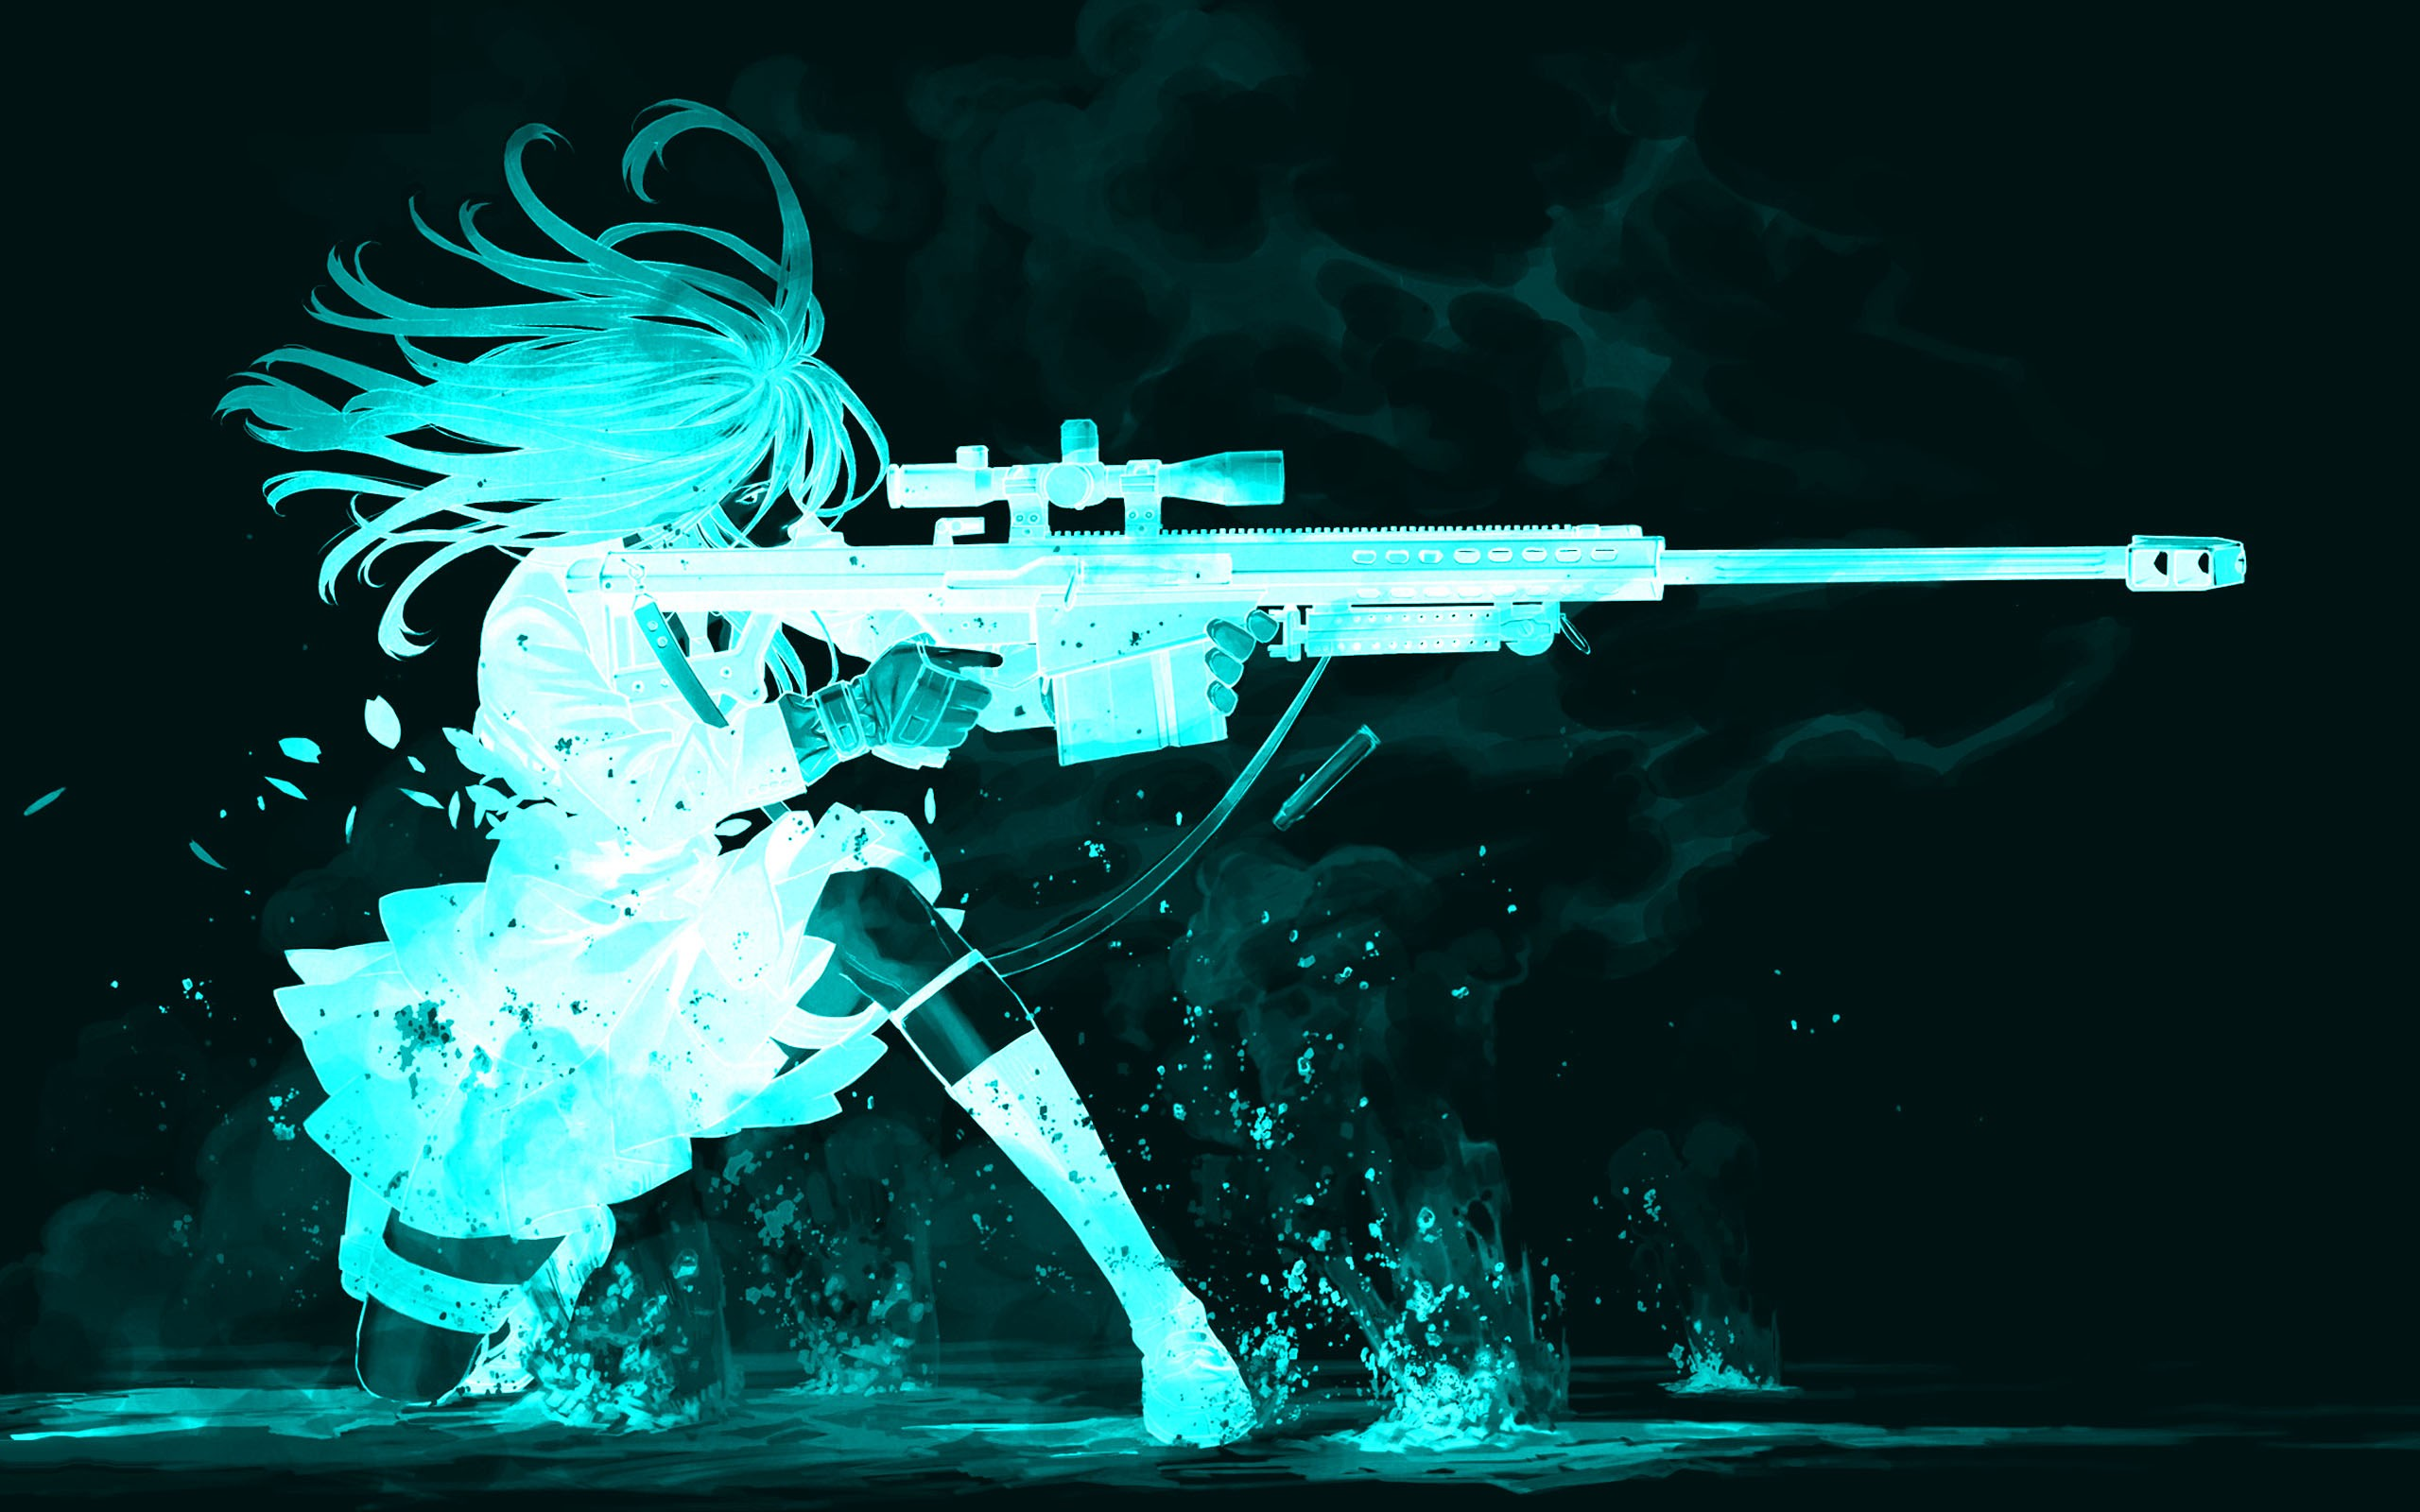 60+ cool anime backgrounds ·① download free cool full hd wallpapers